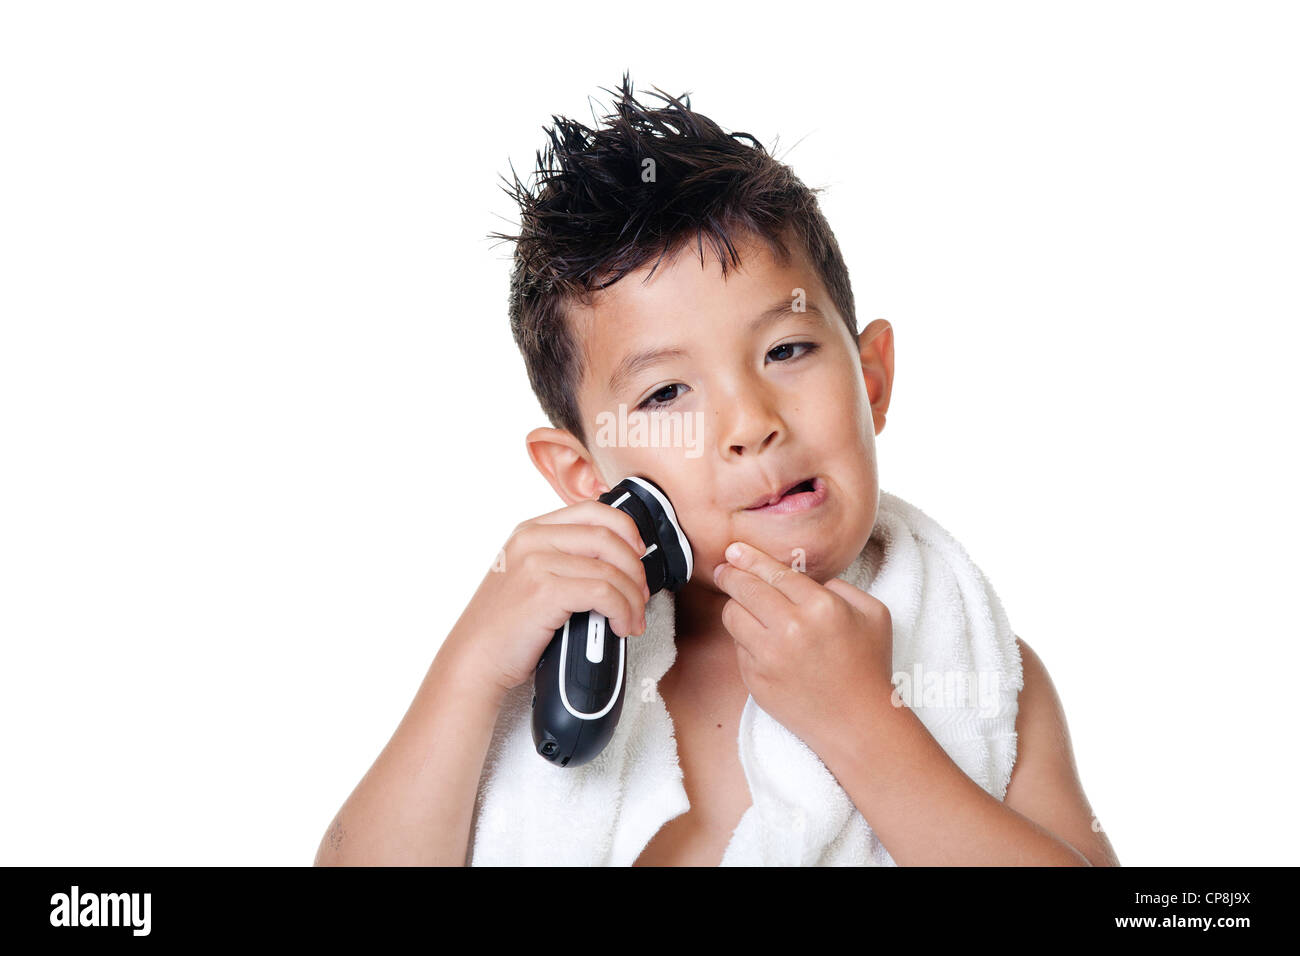 Boy has fun pretending to shave with an electric razor. - Stock Image